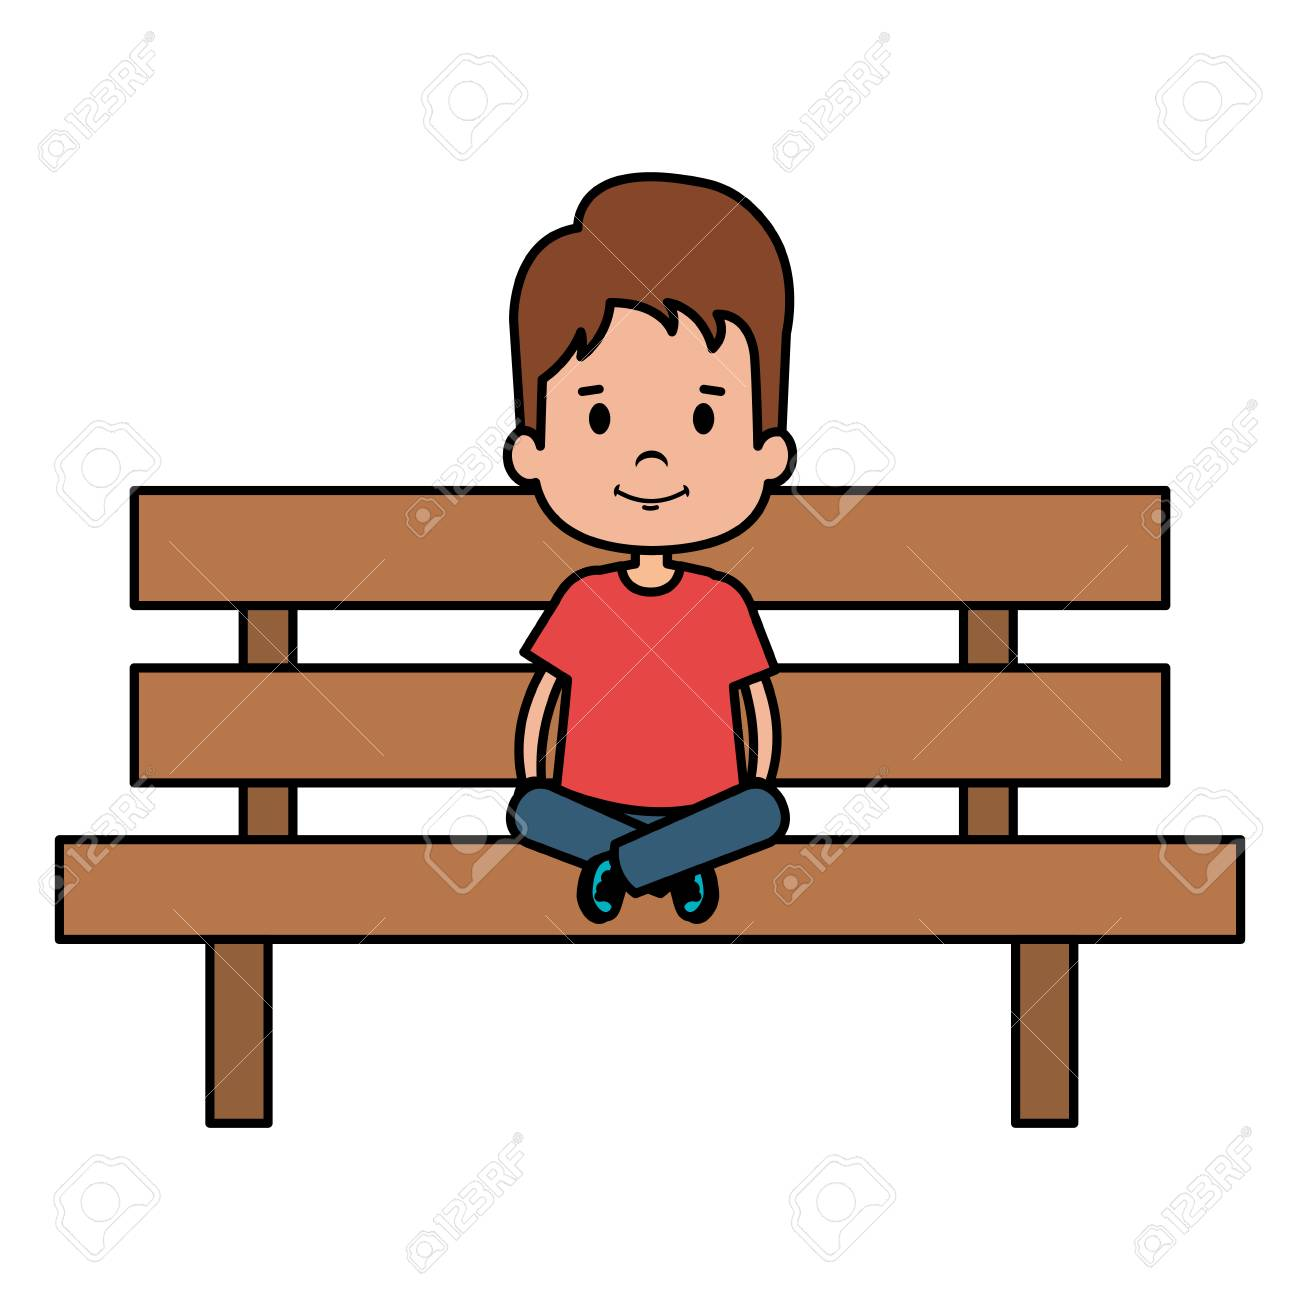 Tremendous Little Boy Sitting In Park Chair Character Vector Illustration Gmtry Best Dining Table And Chair Ideas Images Gmtryco